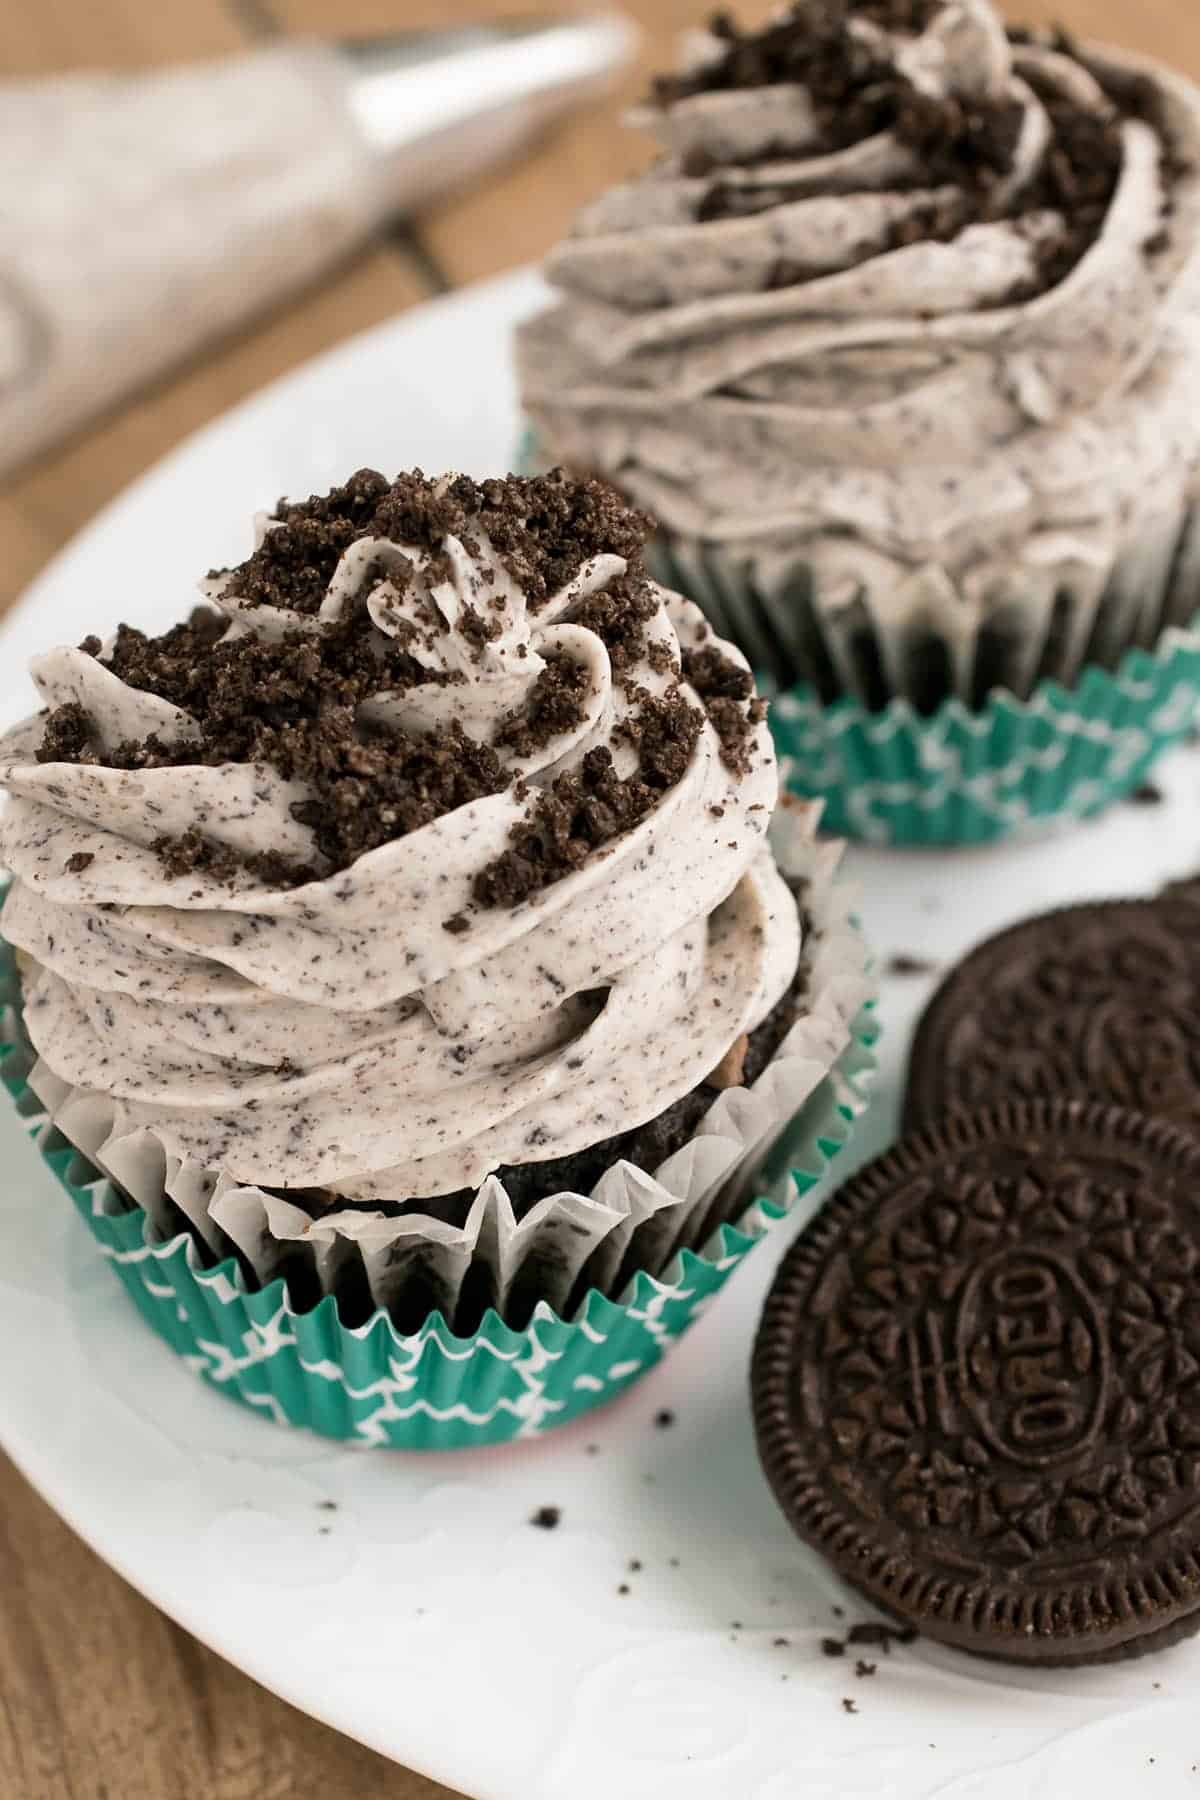 Two chocolate cupcakes in turquoise liners on white plate next to stacked Oreo cookie.